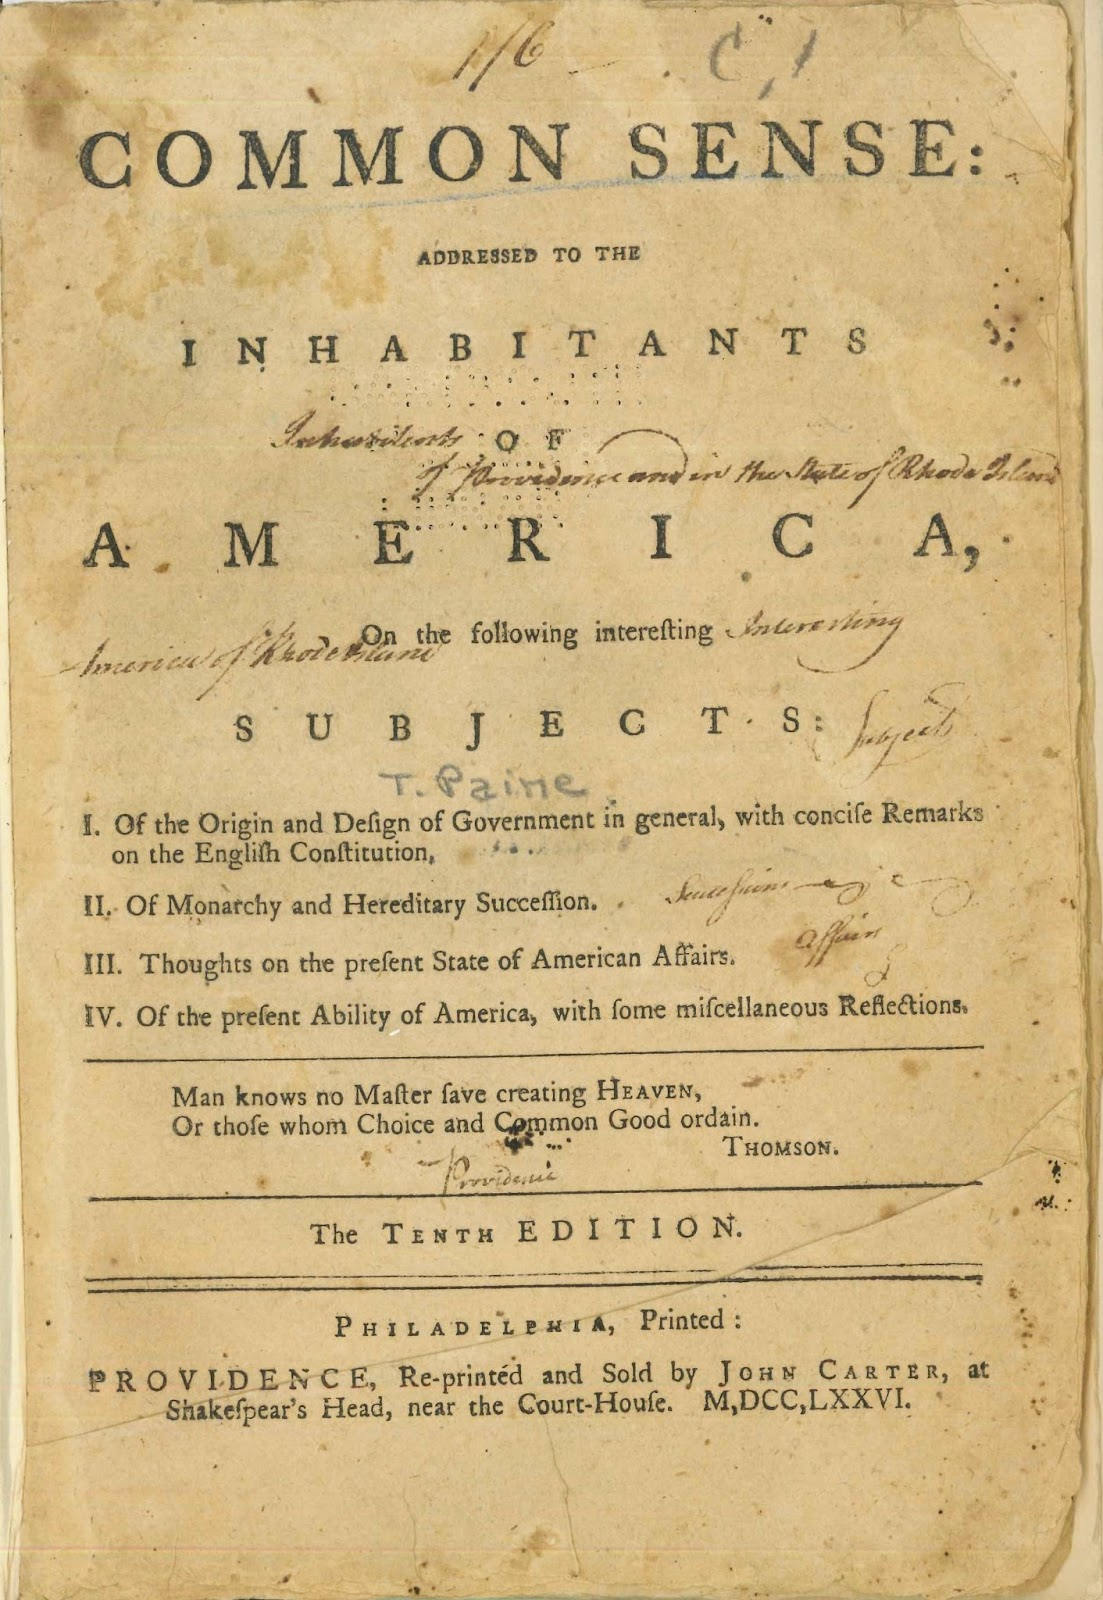 an analysis of the american revolution in common sense by thomas paine Common sense pamphlet by thomas paine is one of the seminal documents of the american revolution do a primary source analysis of common sense quotes.